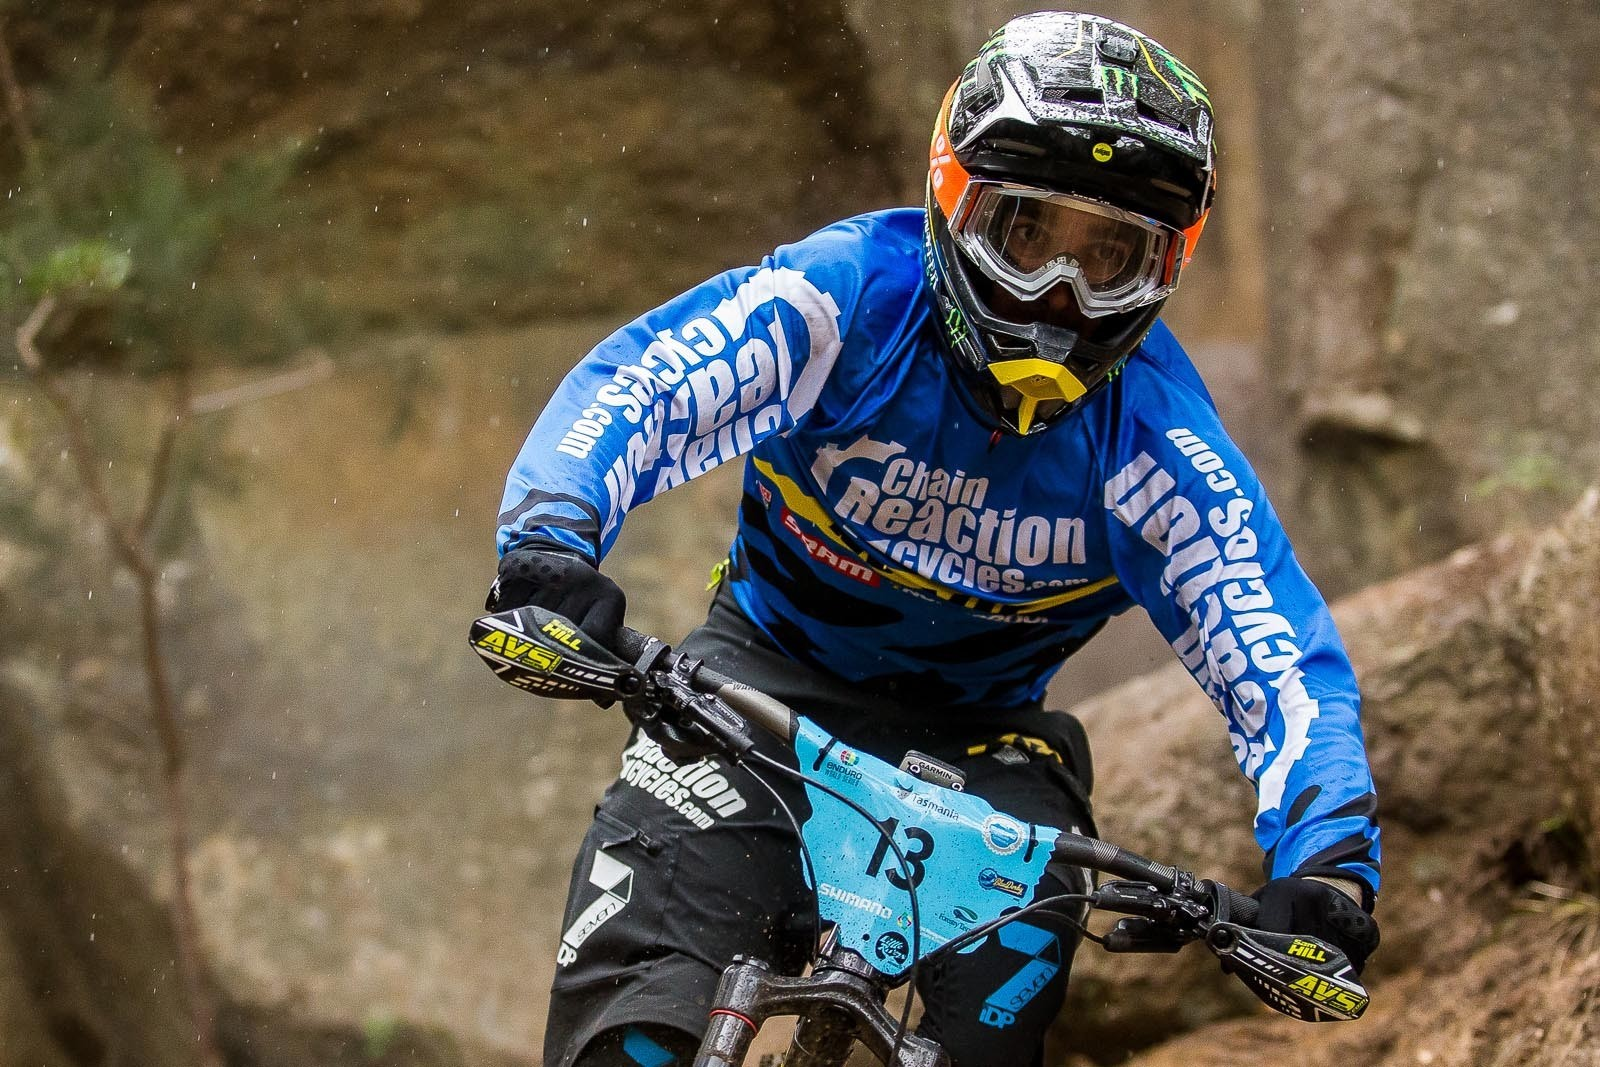 The Legend Delivers in Tasmania – Sam Hill Third at the EWS